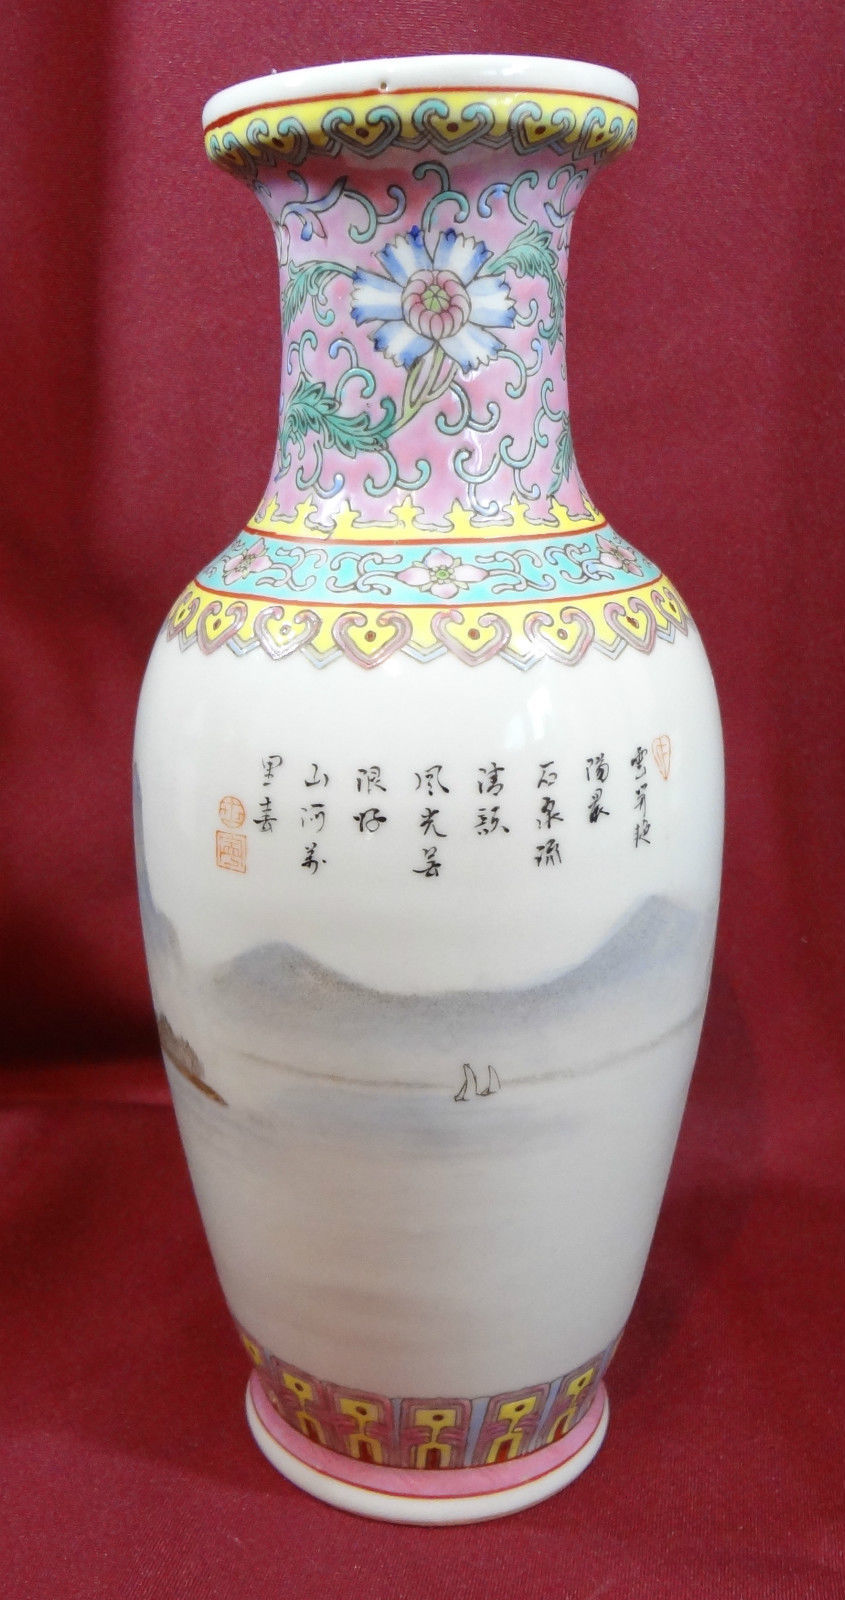 China Chinese Vase Porcelain Landscape 10 inch Tall